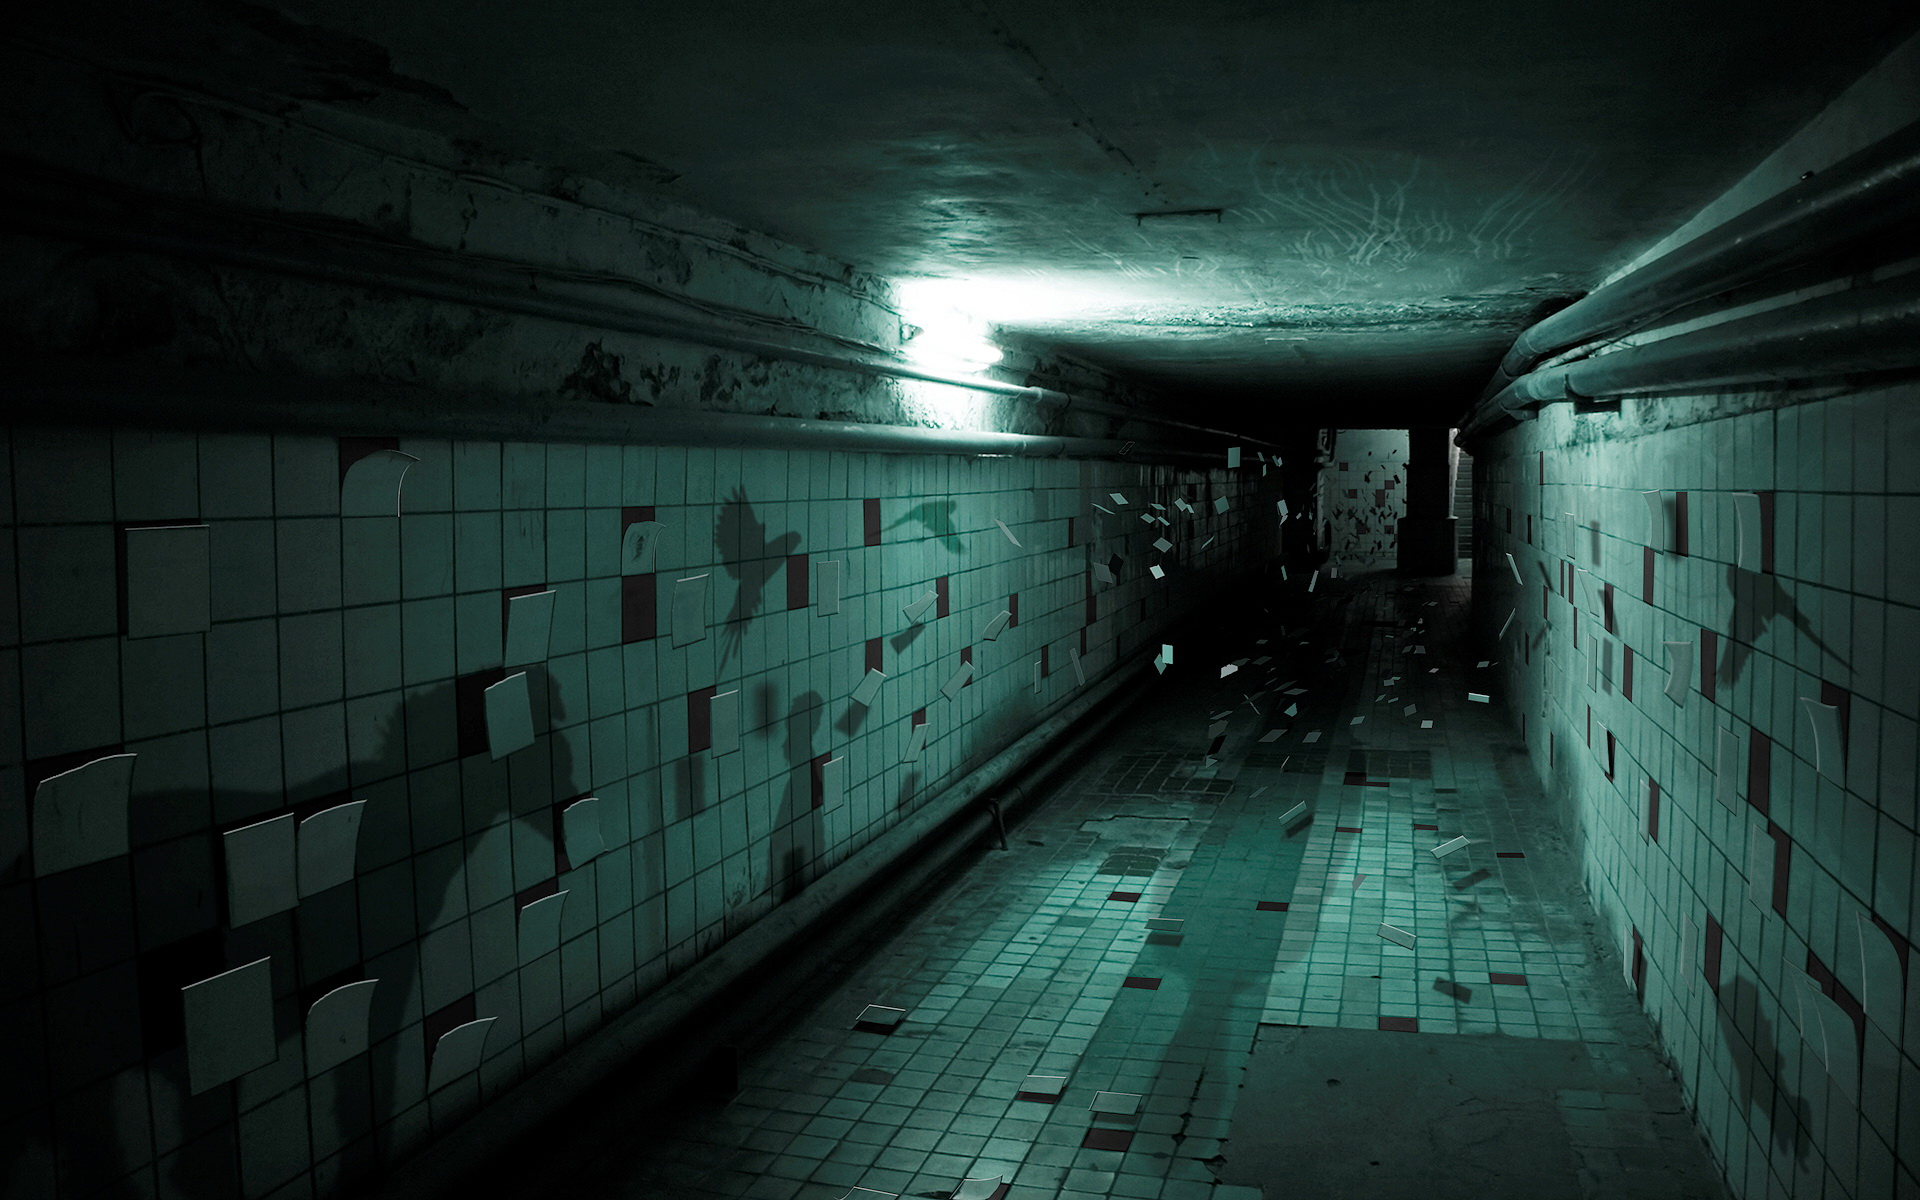 845 creepy hd wallpapers background images wallpaper abyss voltagebd Choice Image